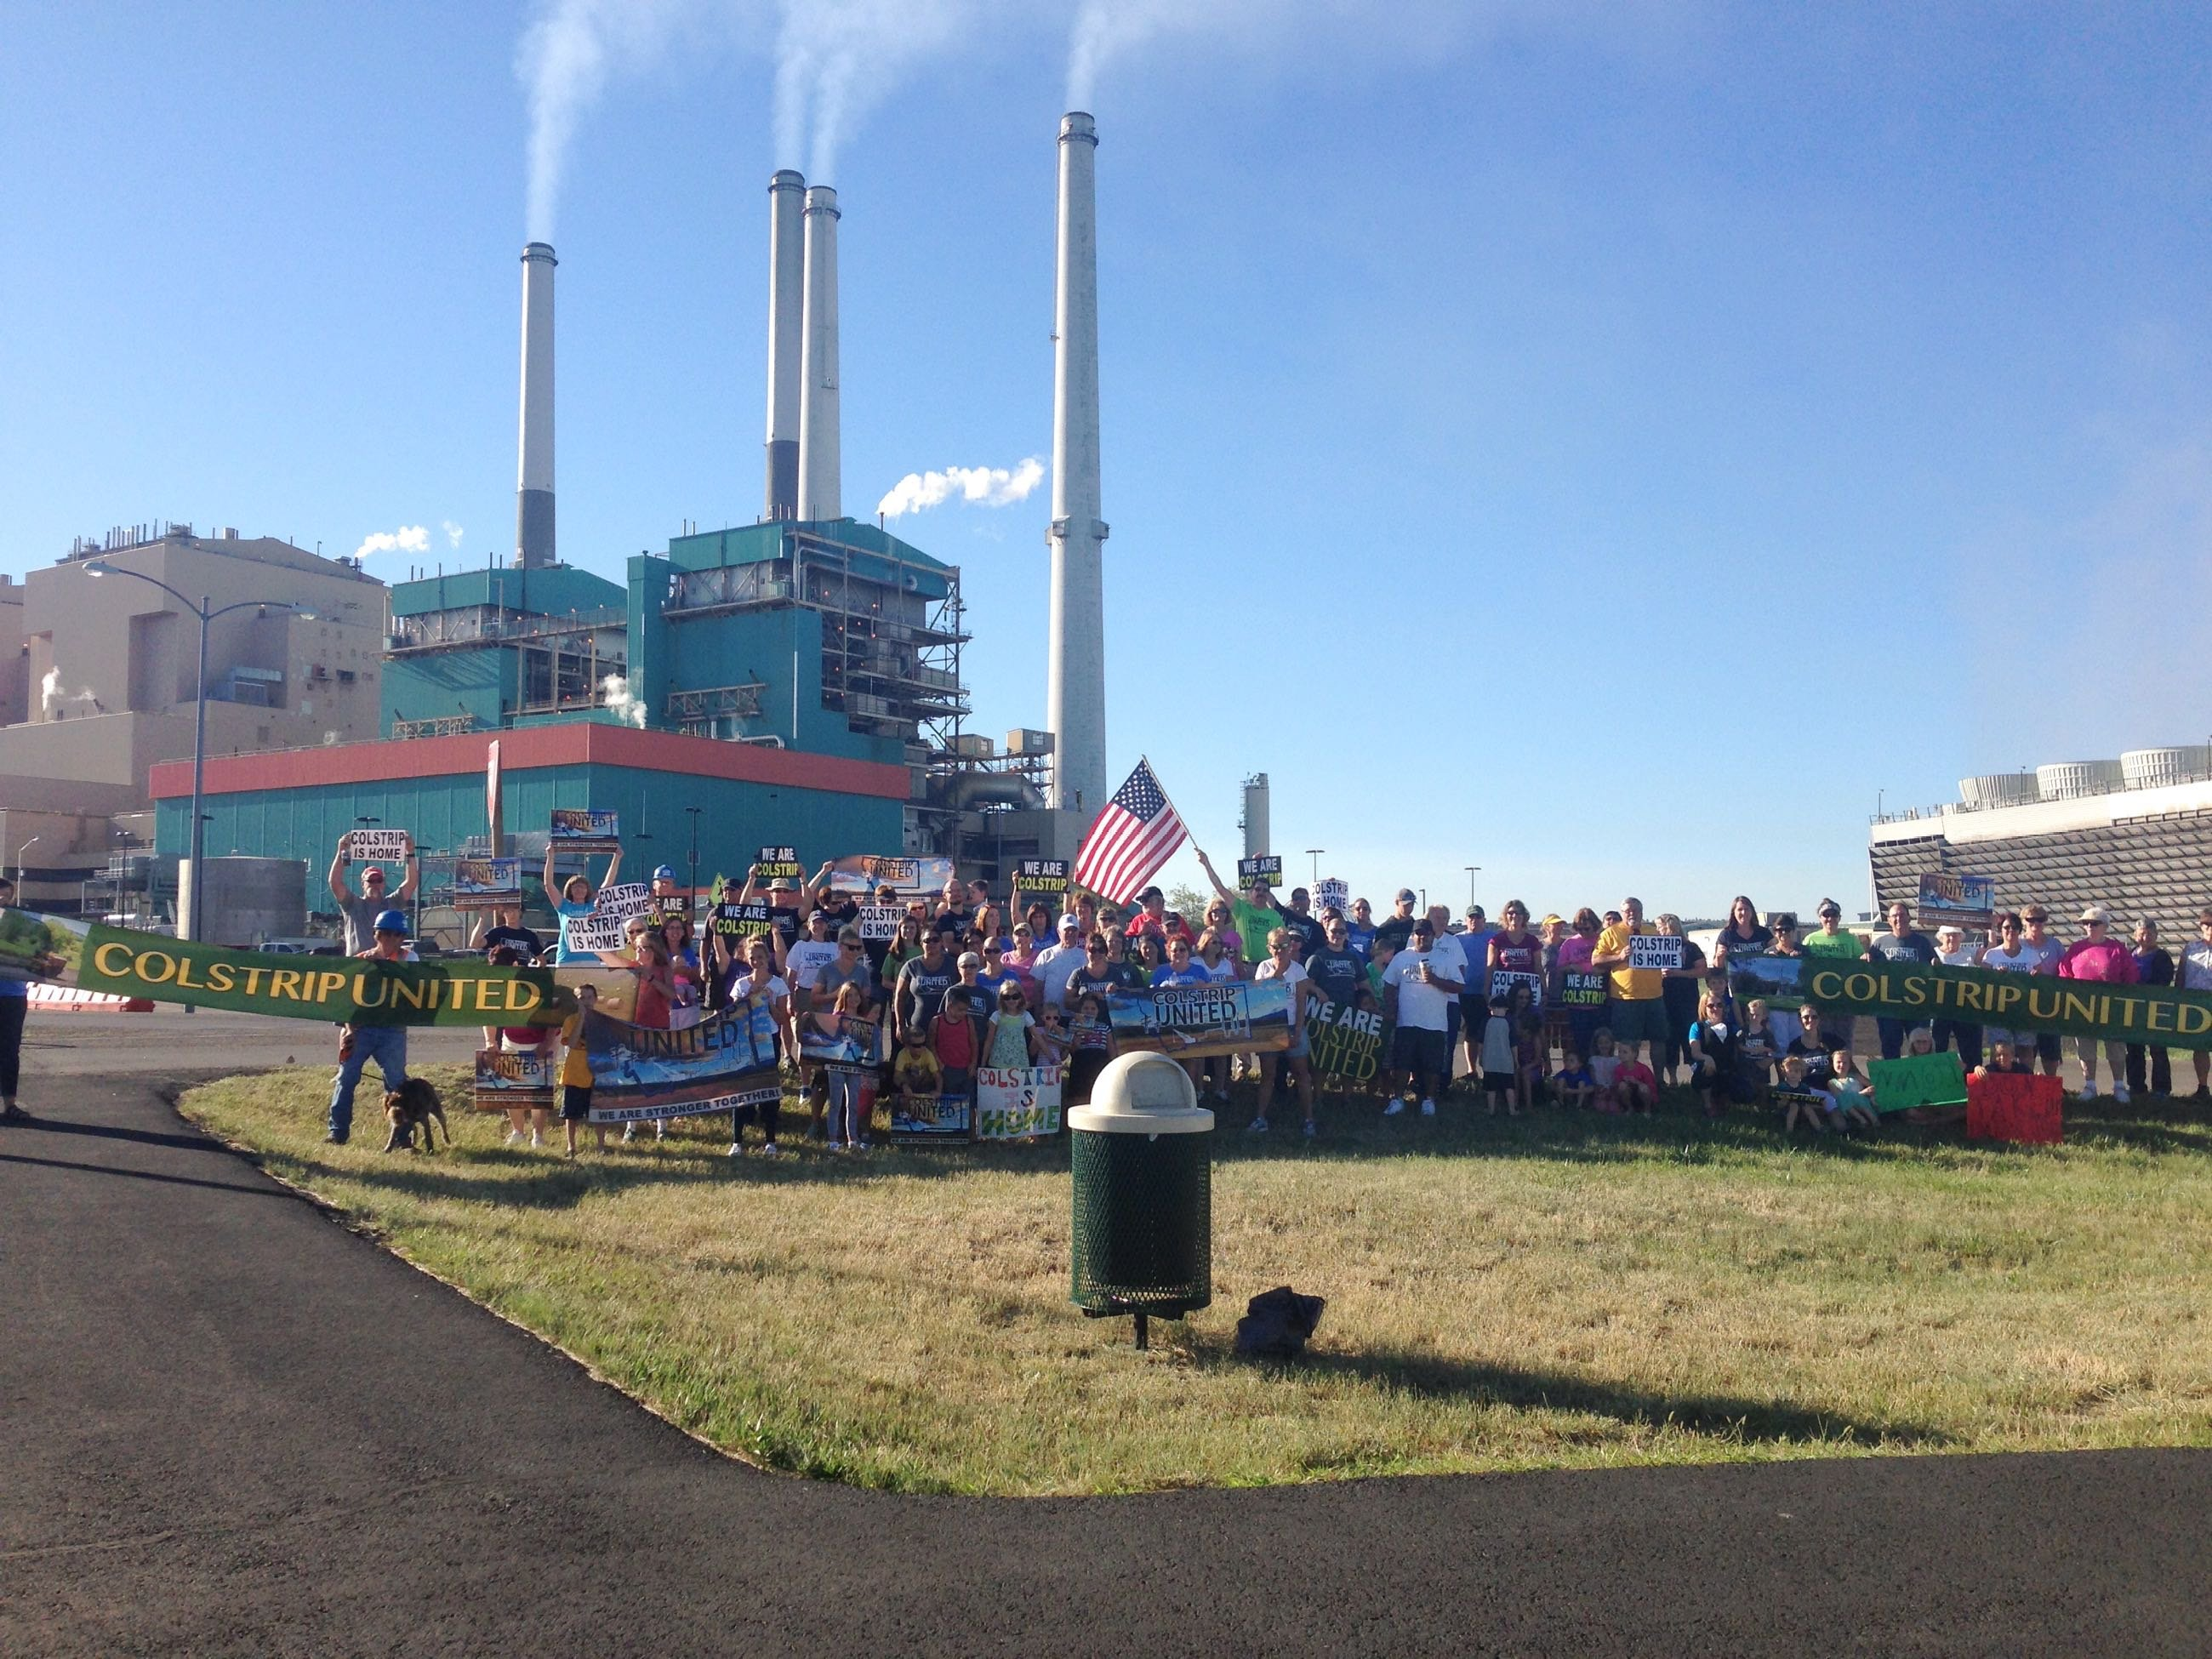 Colstrip United hosts rally to support power plant jobs KRTV